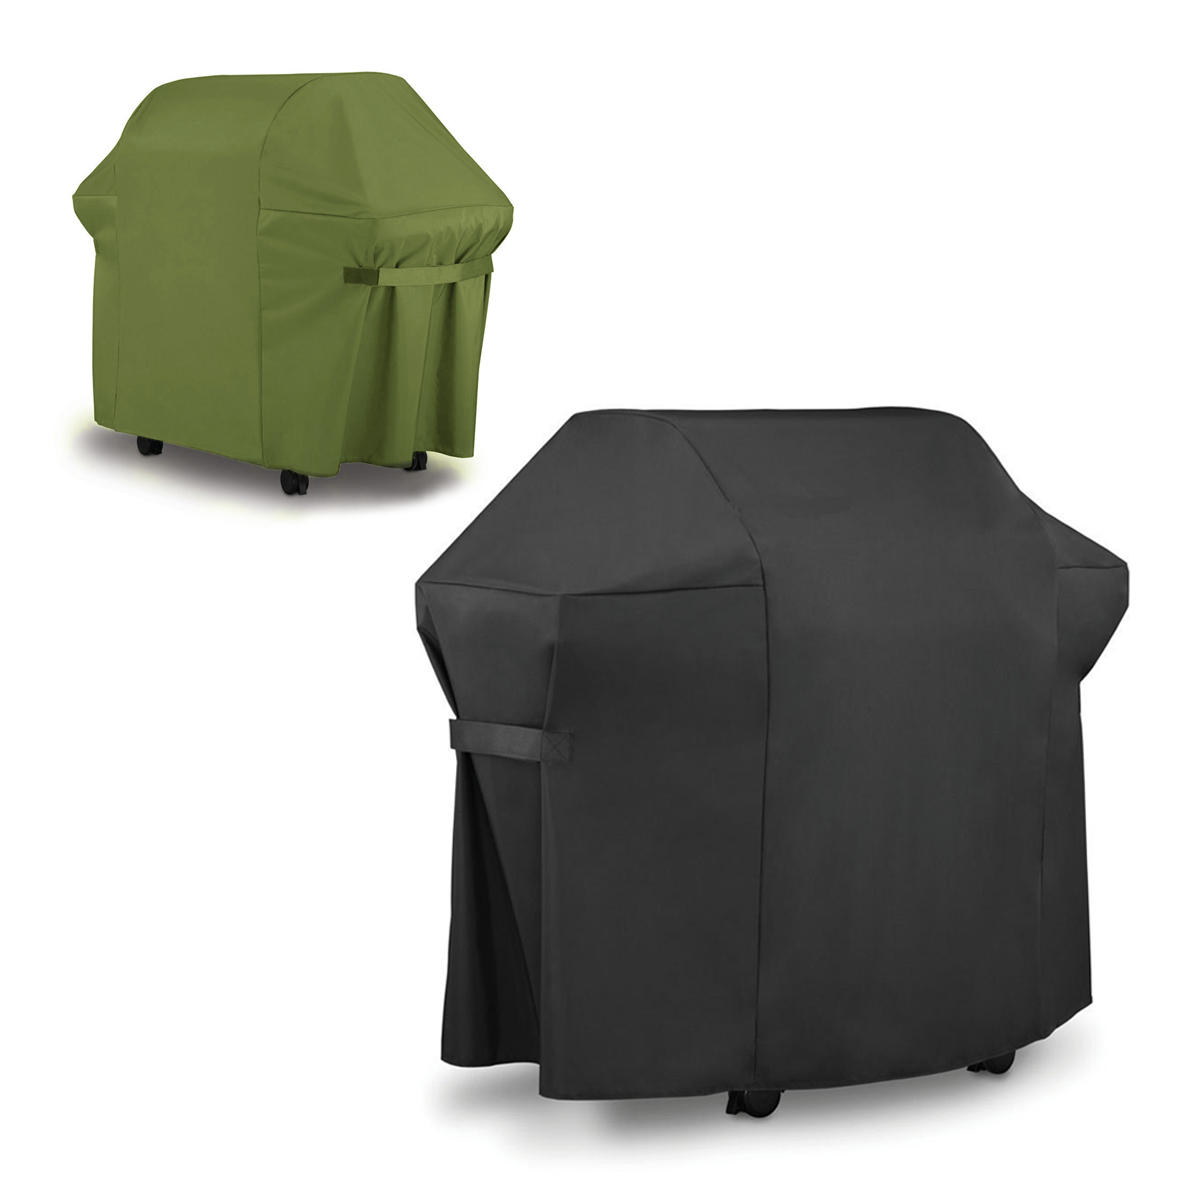 Image of BBQ Grill Cover For Weber 7553 / 7107 Black Green Gas Grills Outdoor Waterproof Furniture Waterproof Cover